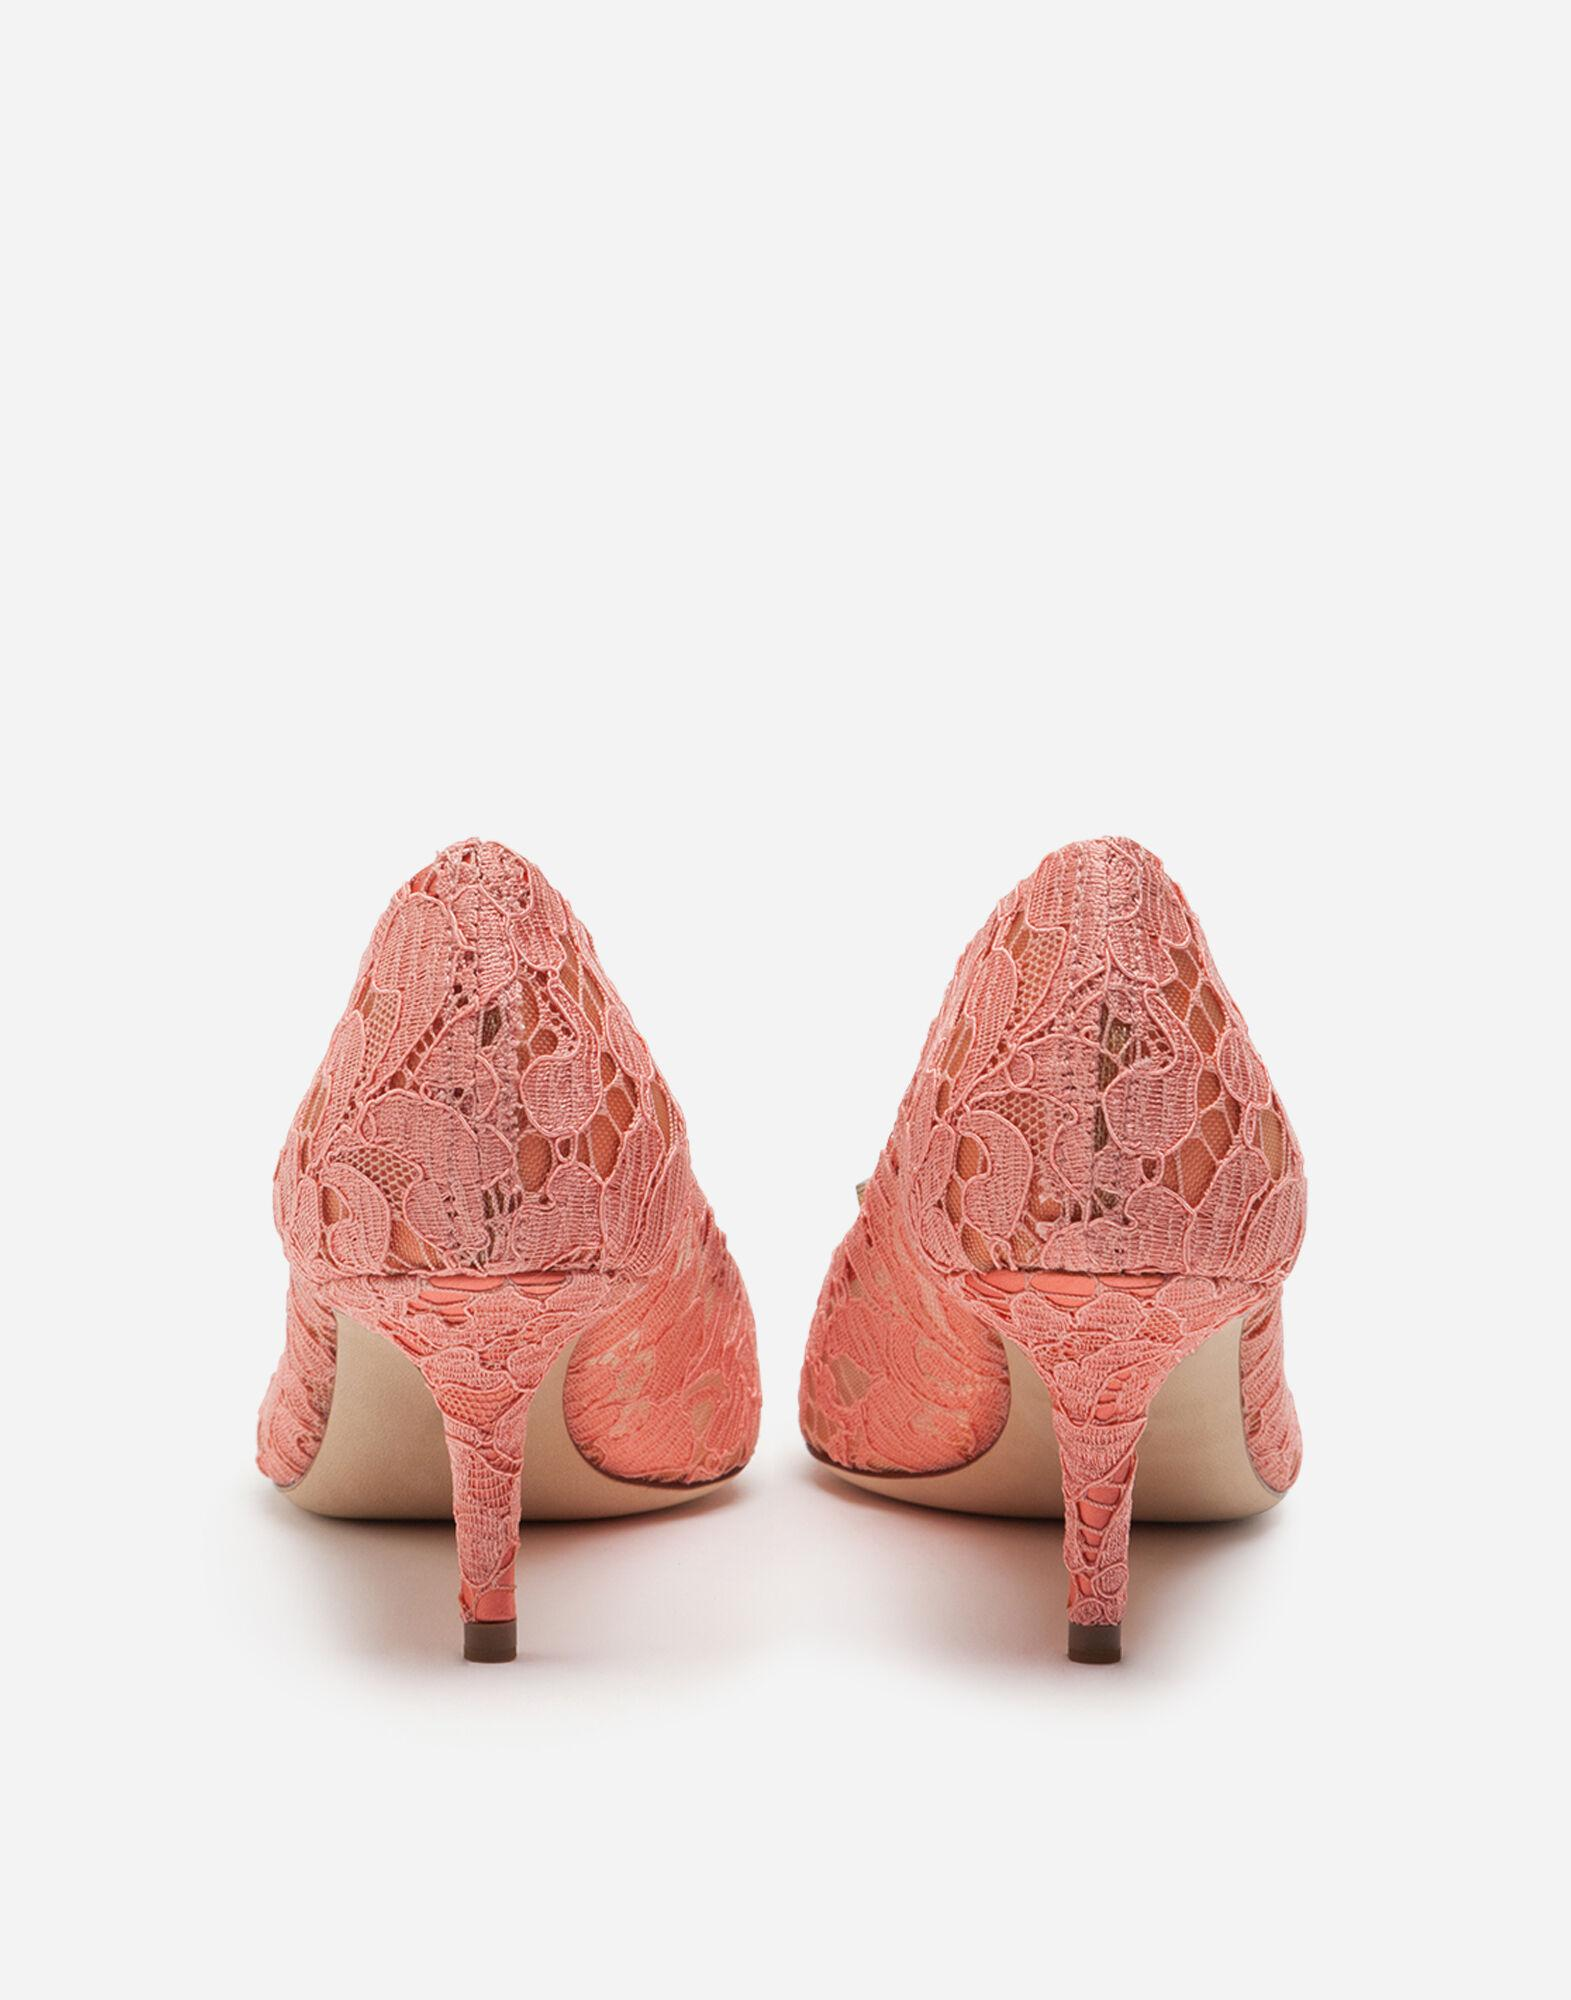 Taormina lace pumps with crystals 2